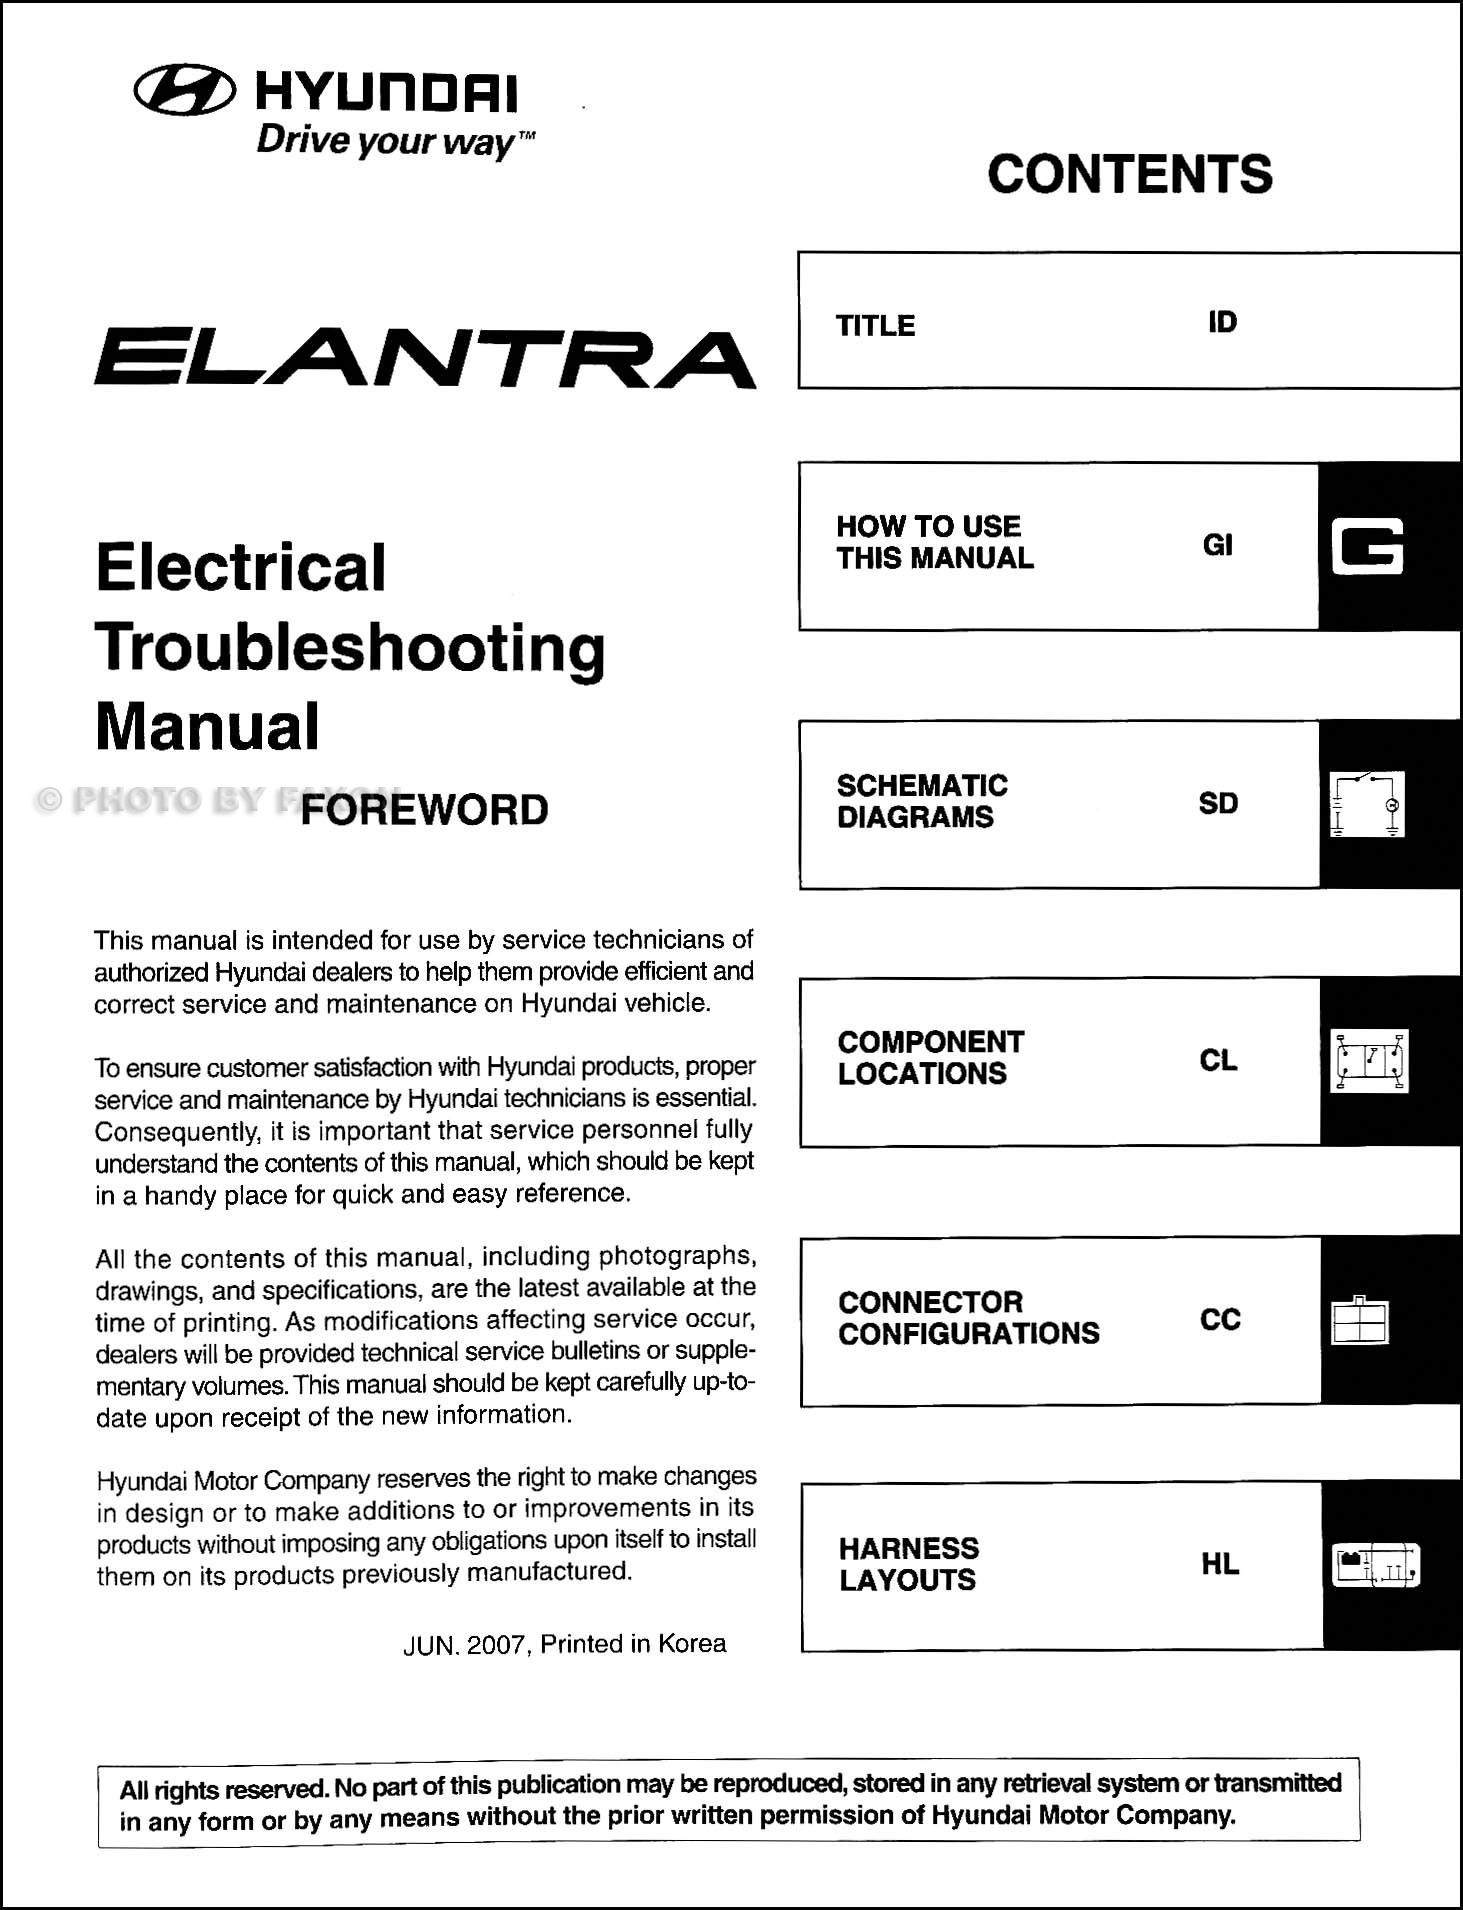 2012 Elantra Radio Wiring Diagram Reveolution Of Hyundai Fuse Box 2008 Electrical Troubleshooting Manual Stereo Upgrade Reset Hole